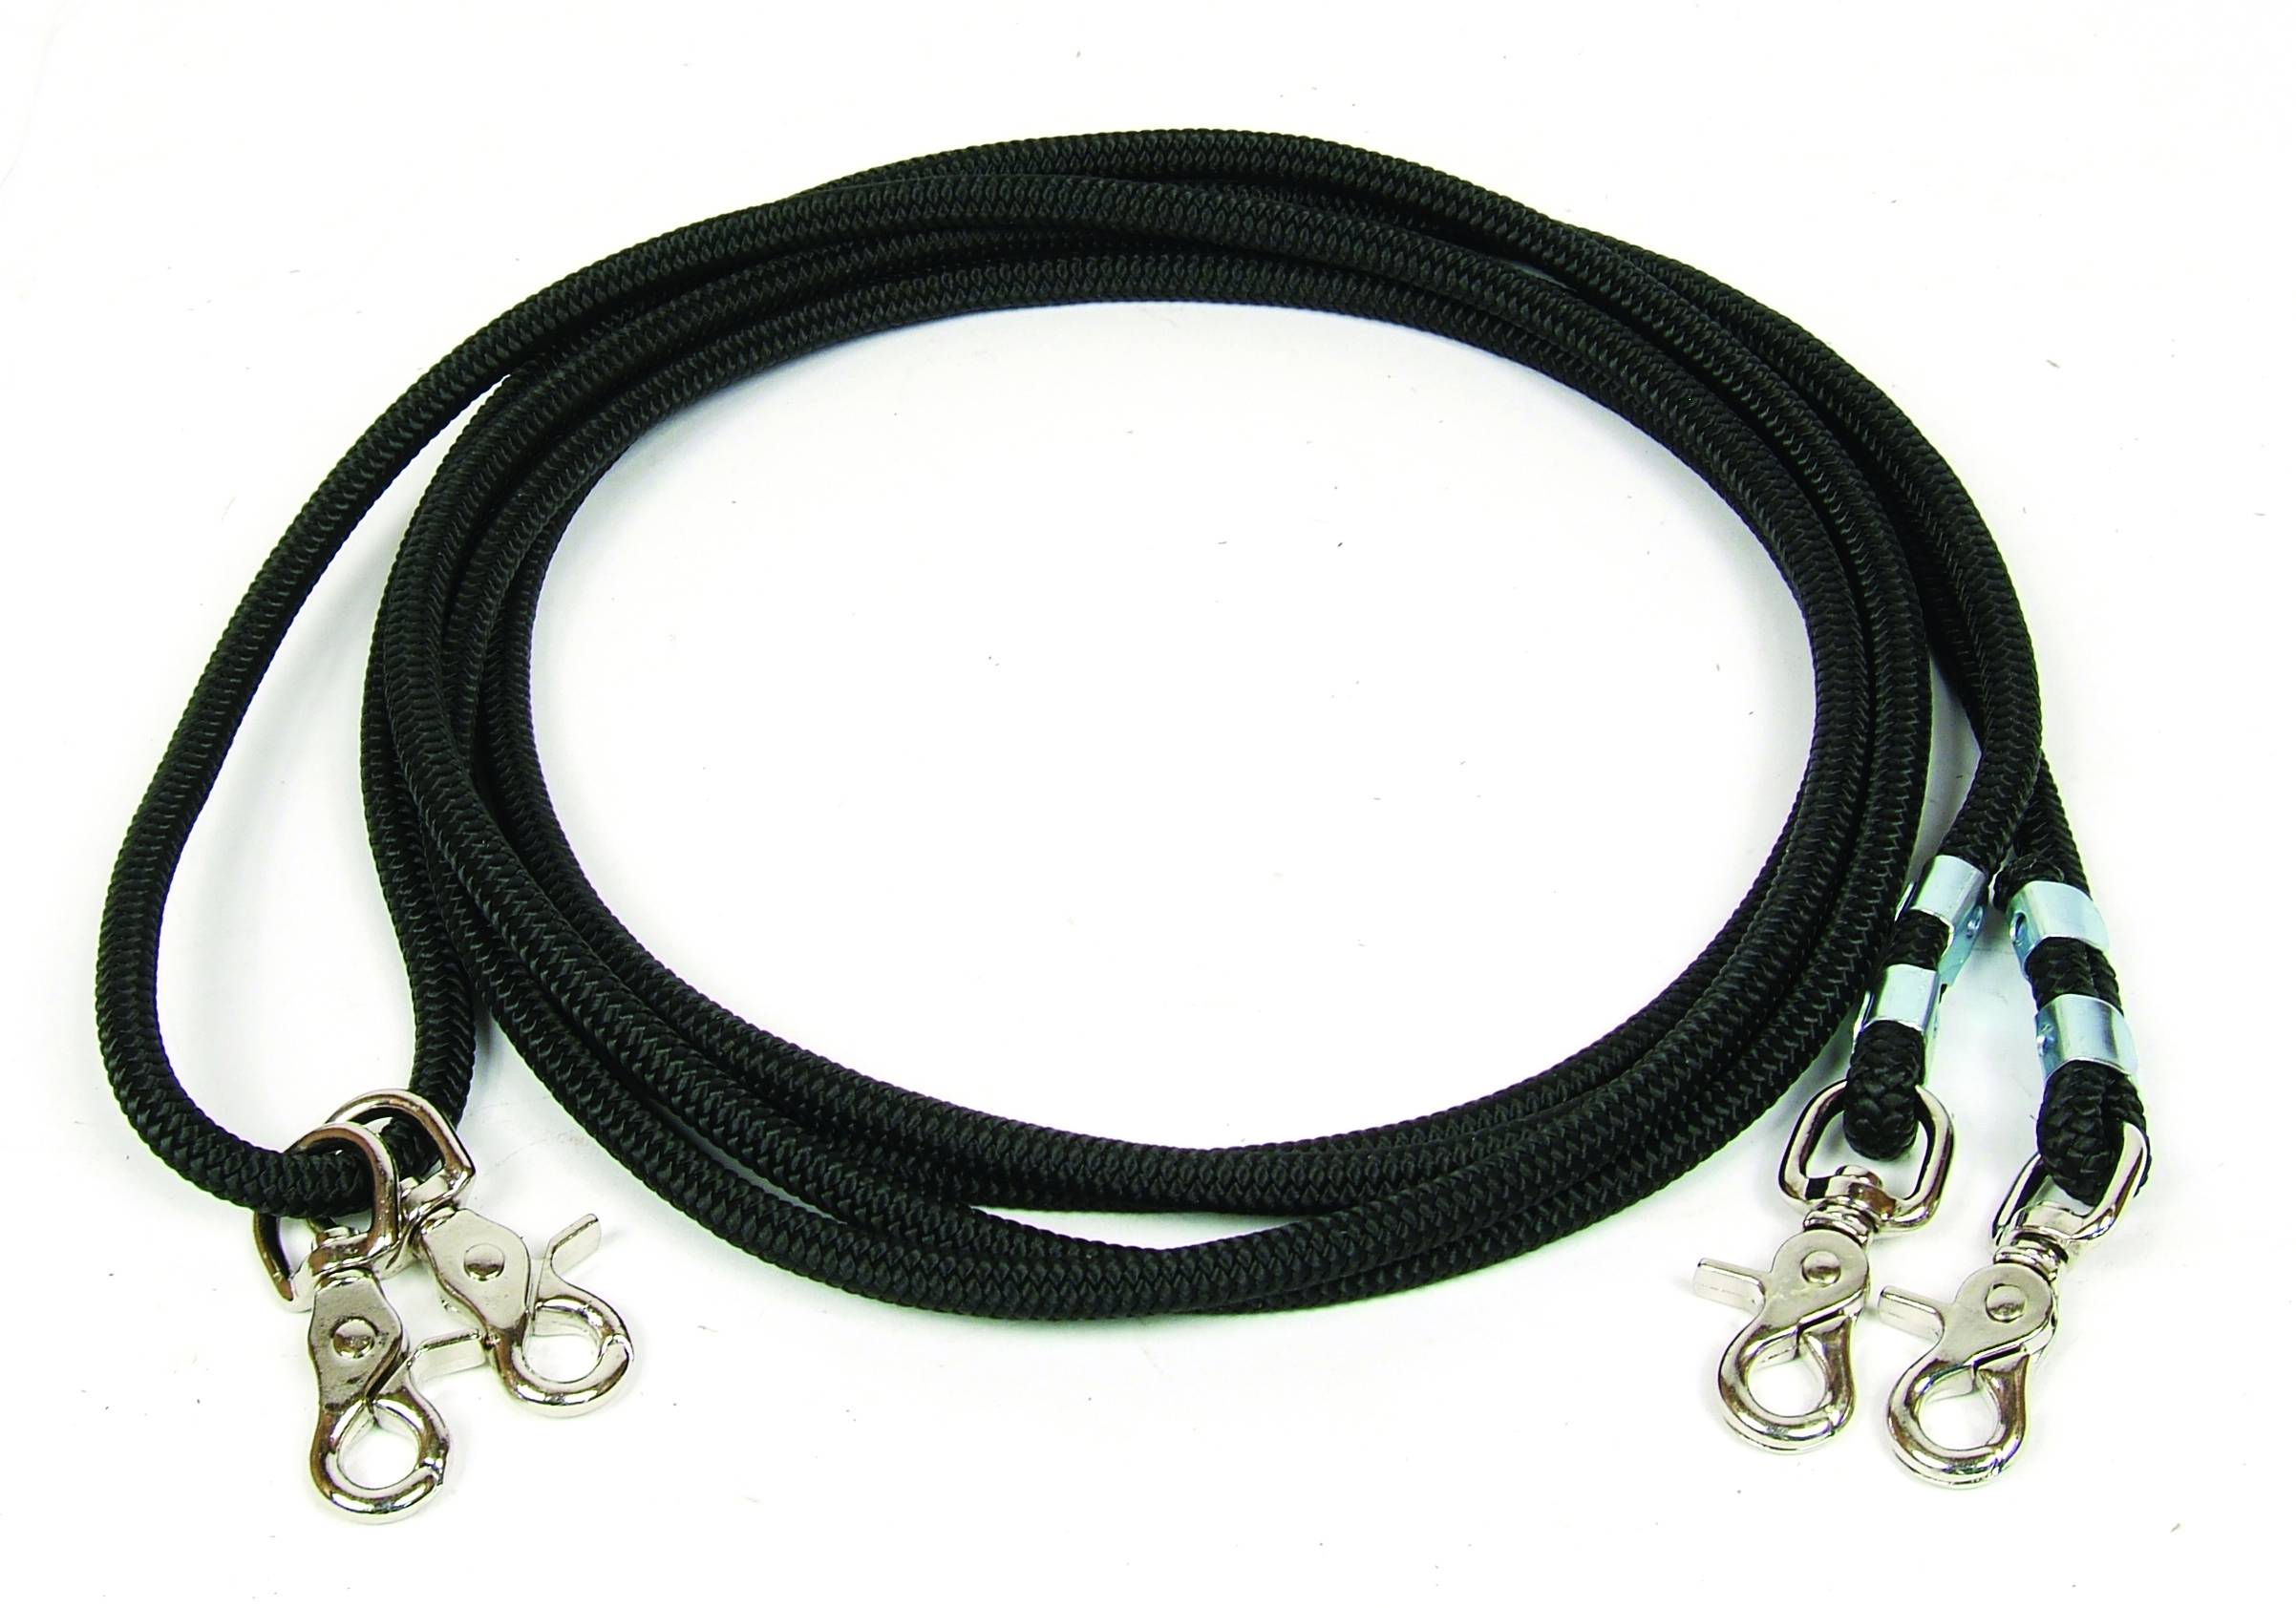 Professionals Choice Cord Rope Draw Reins